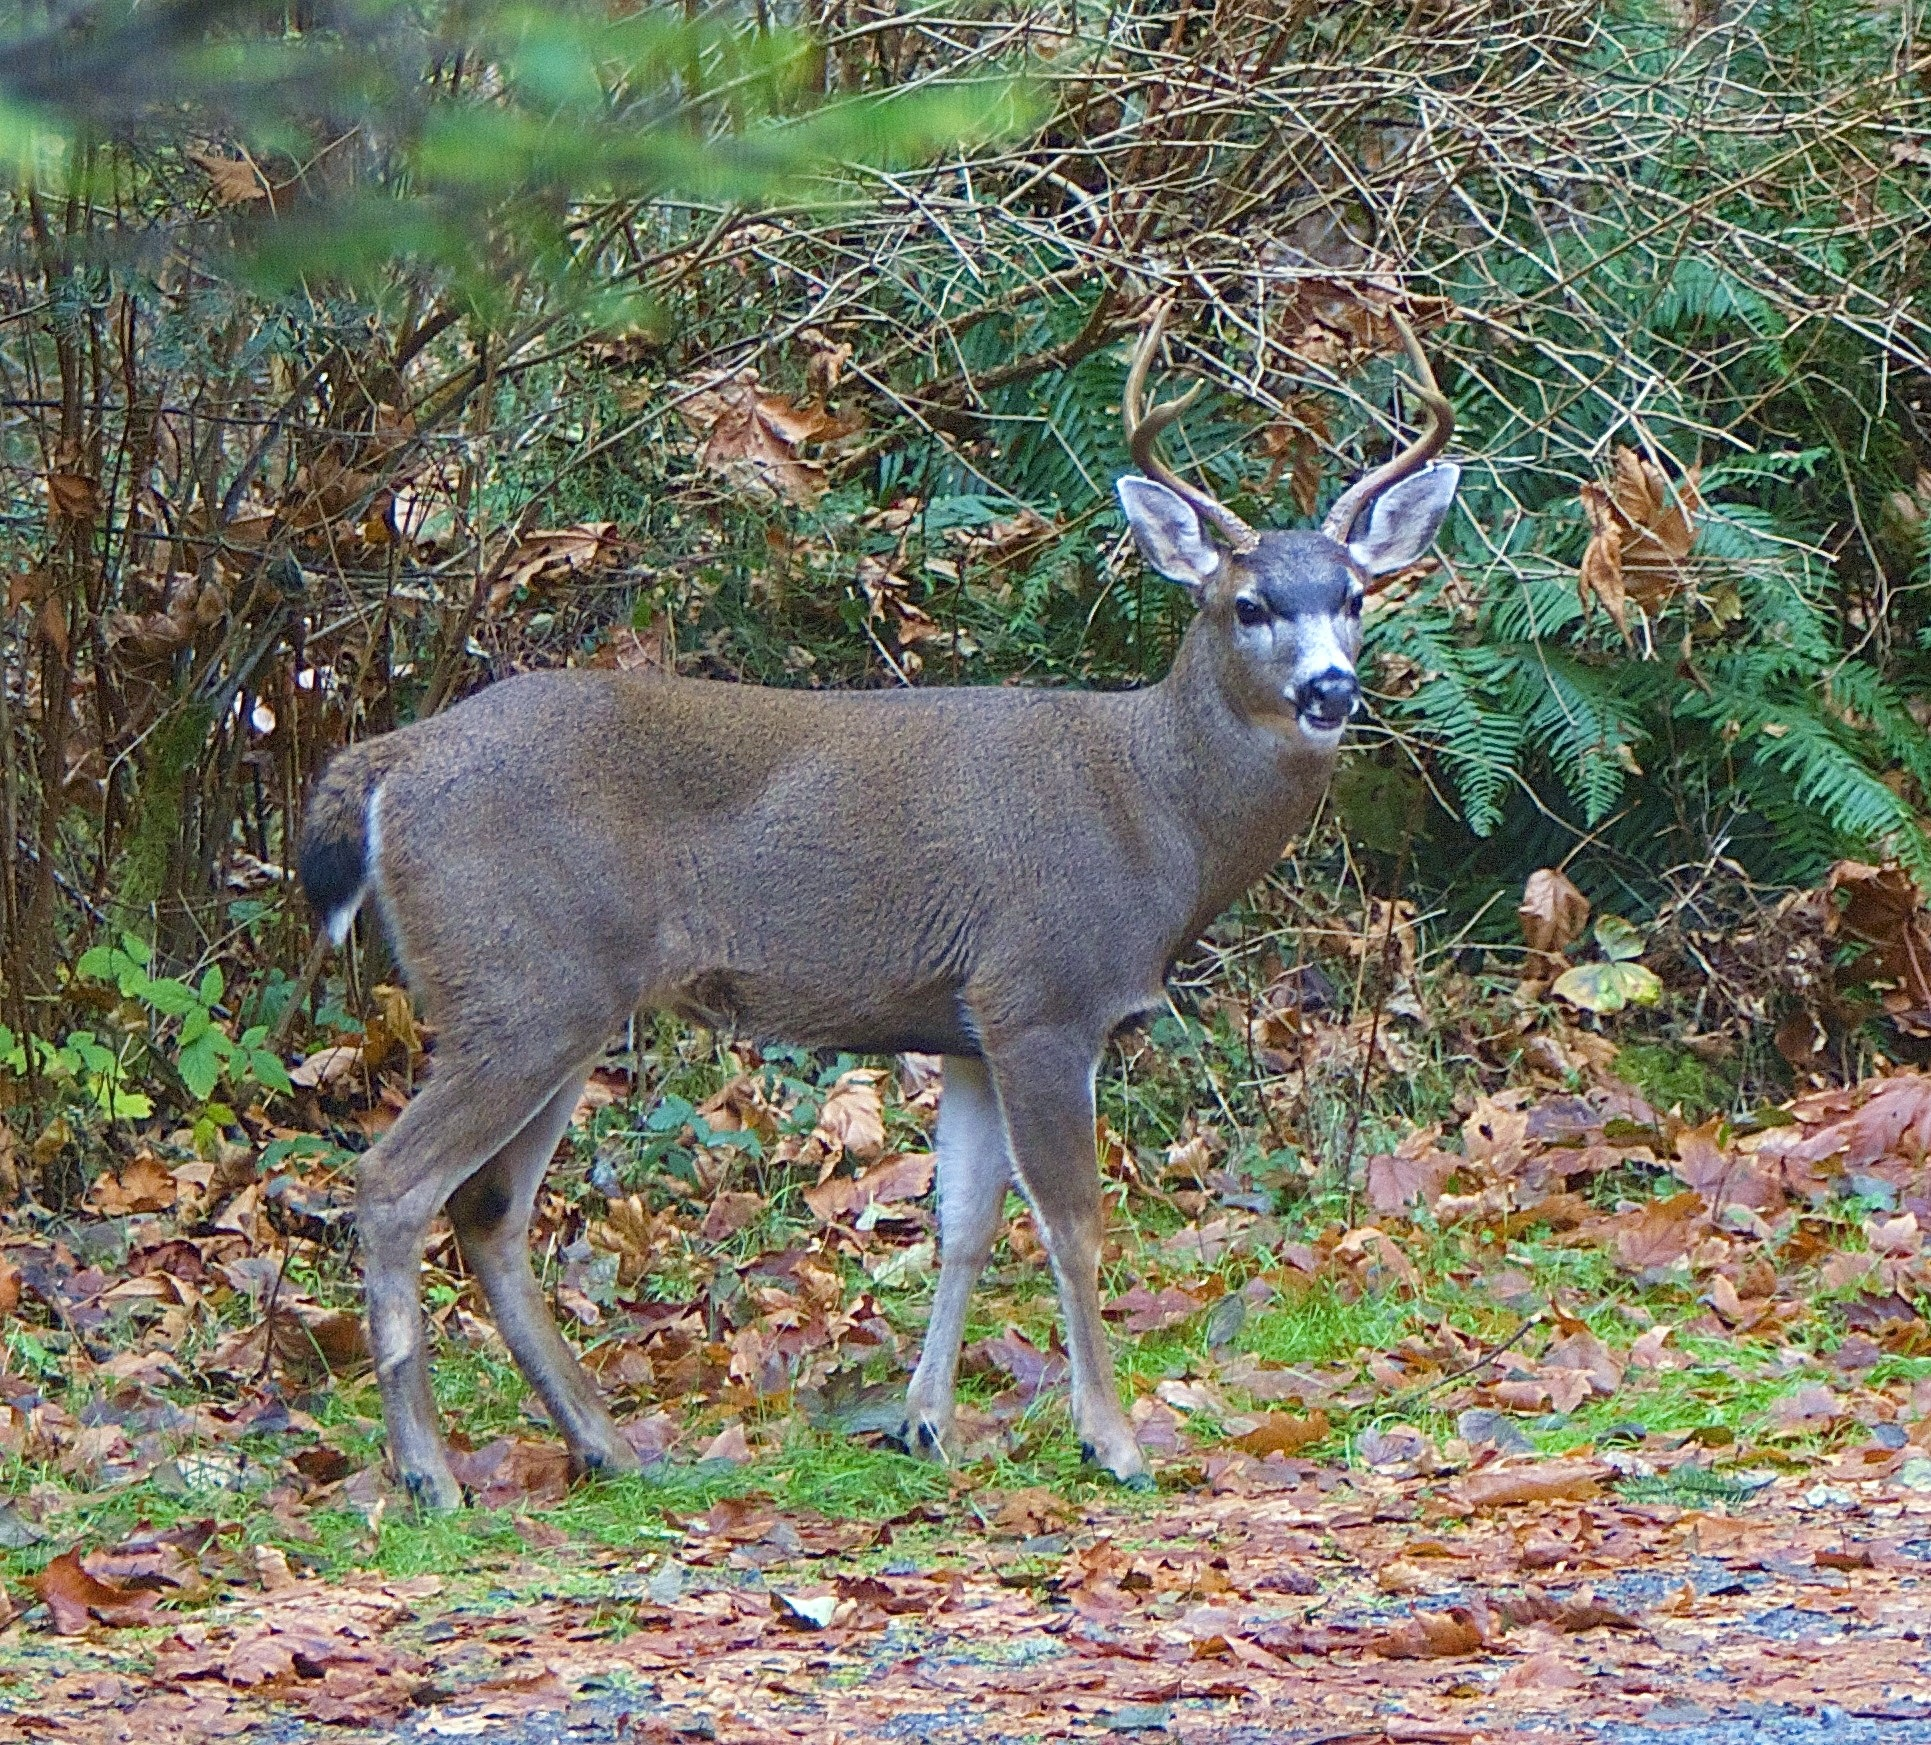 Buck deer @ Hermitage - Nov 18,2014  charles brandt photo